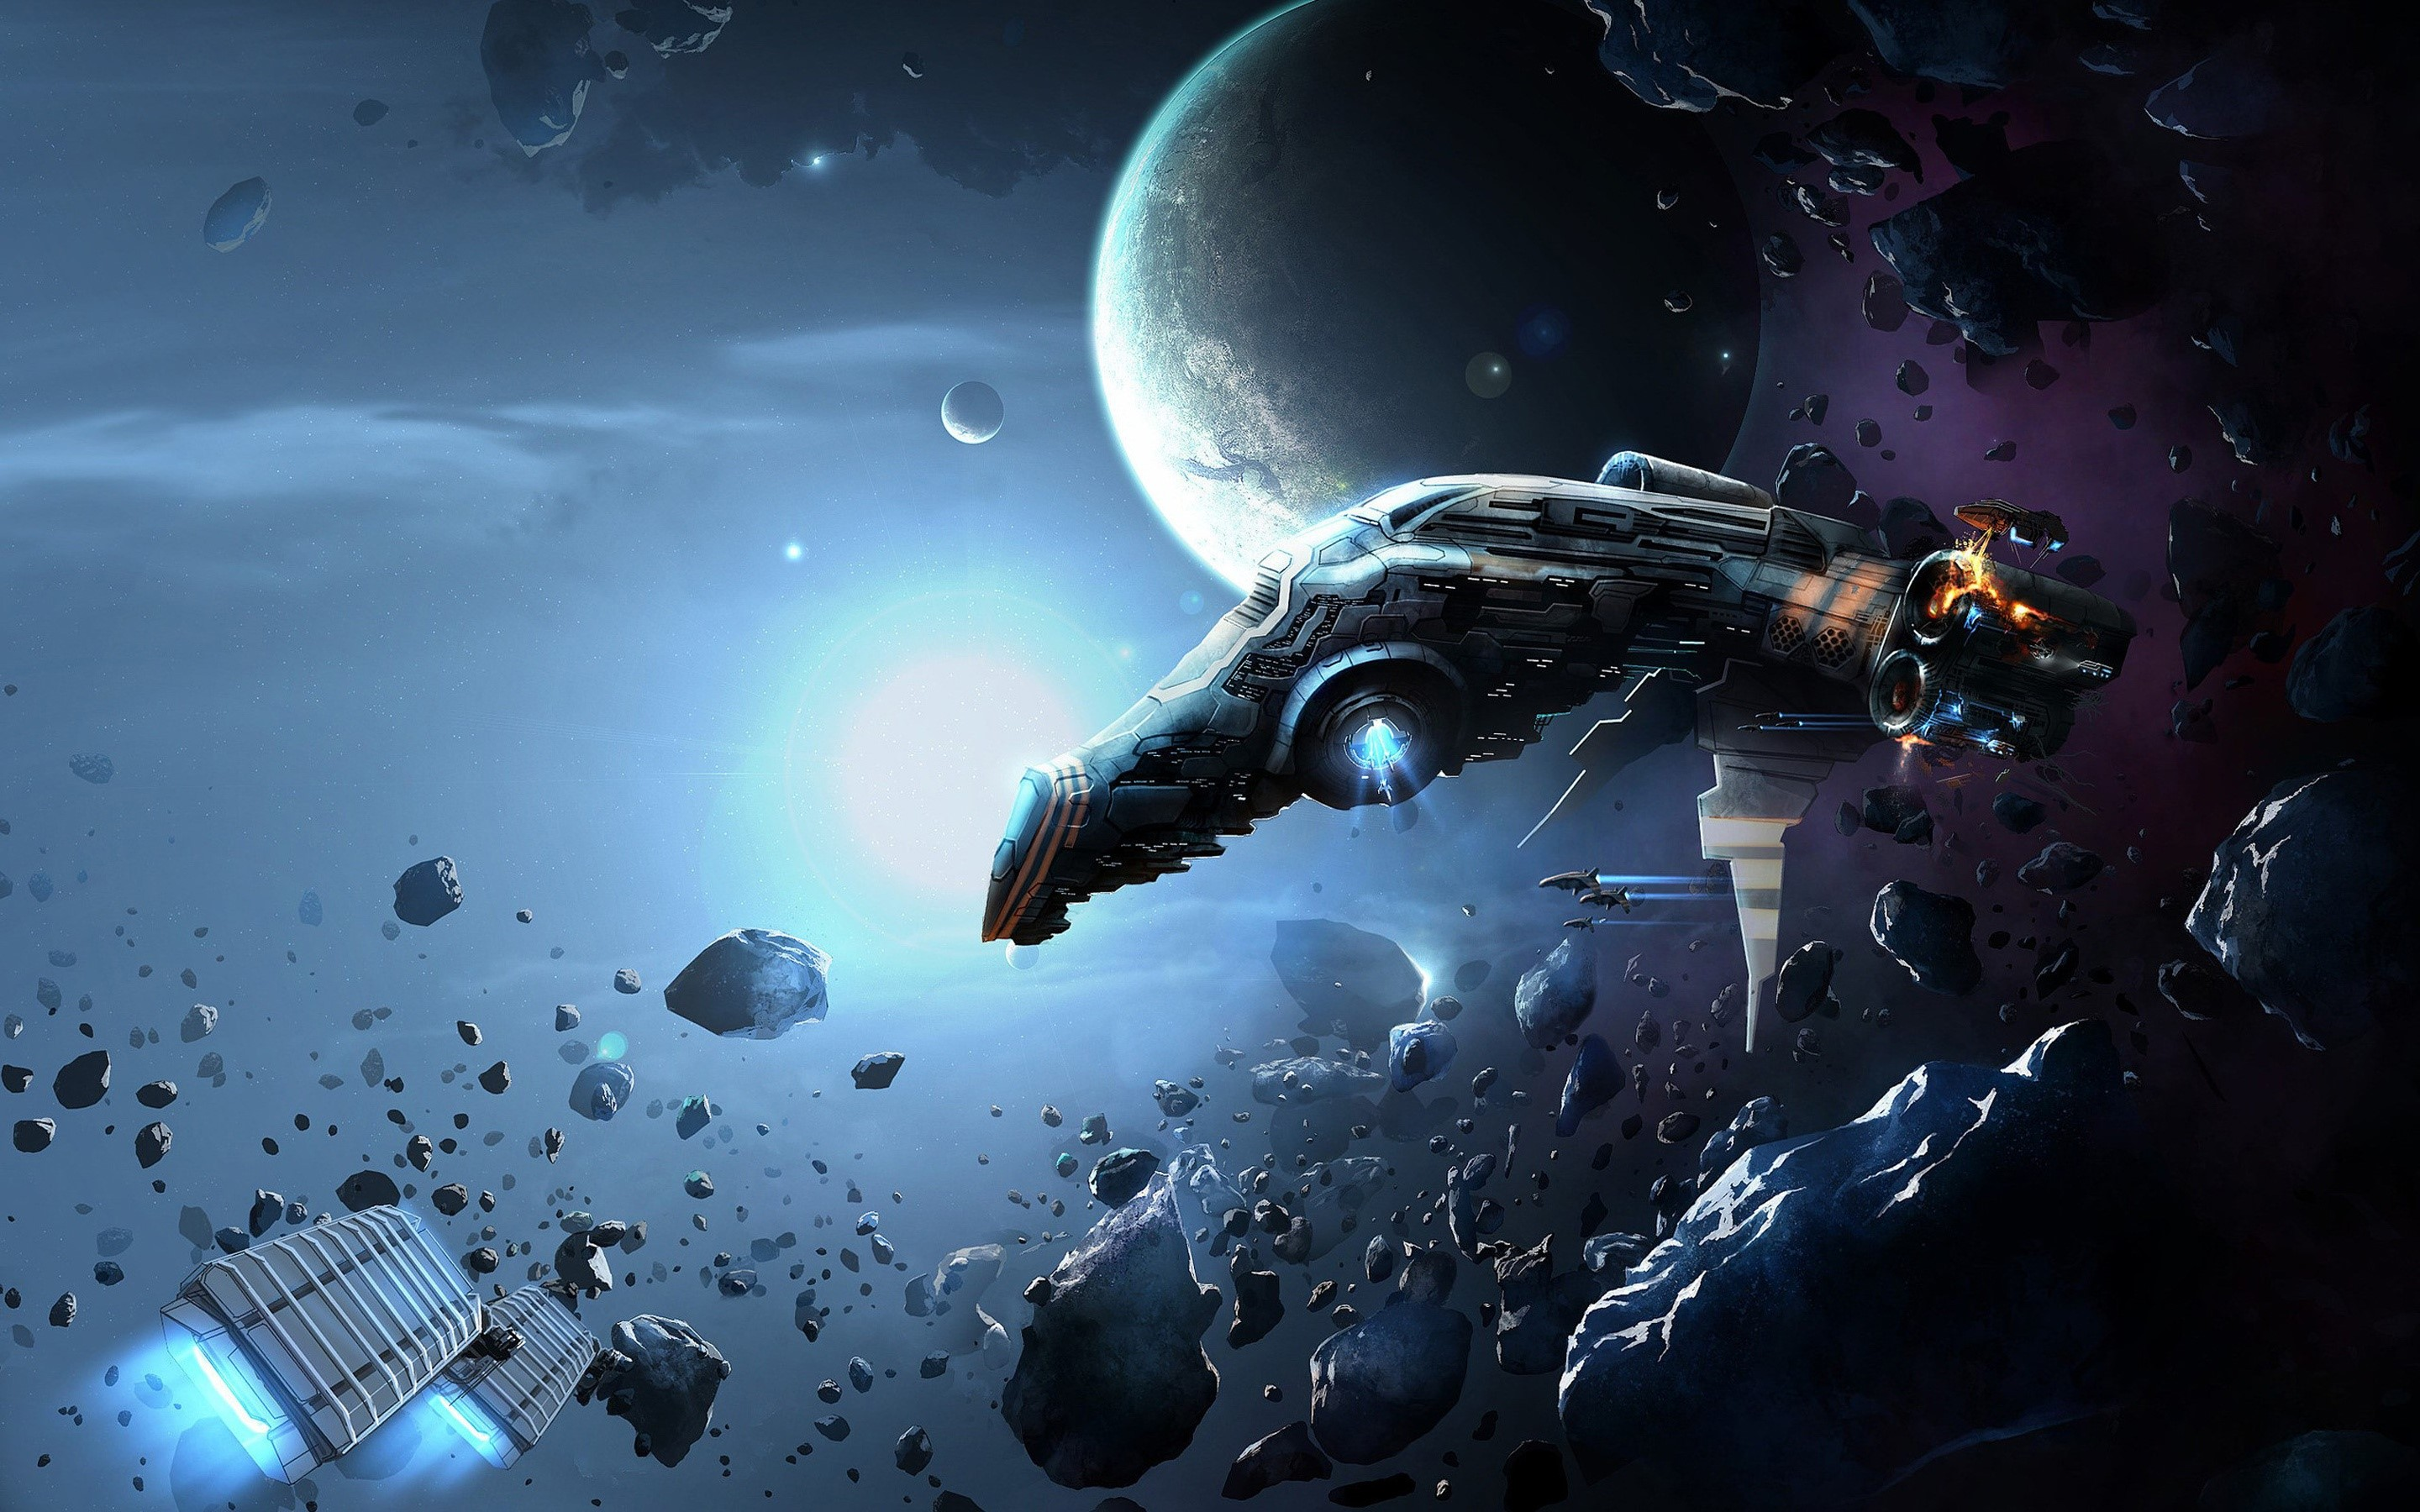 Wallpaper Juego Eve online Images